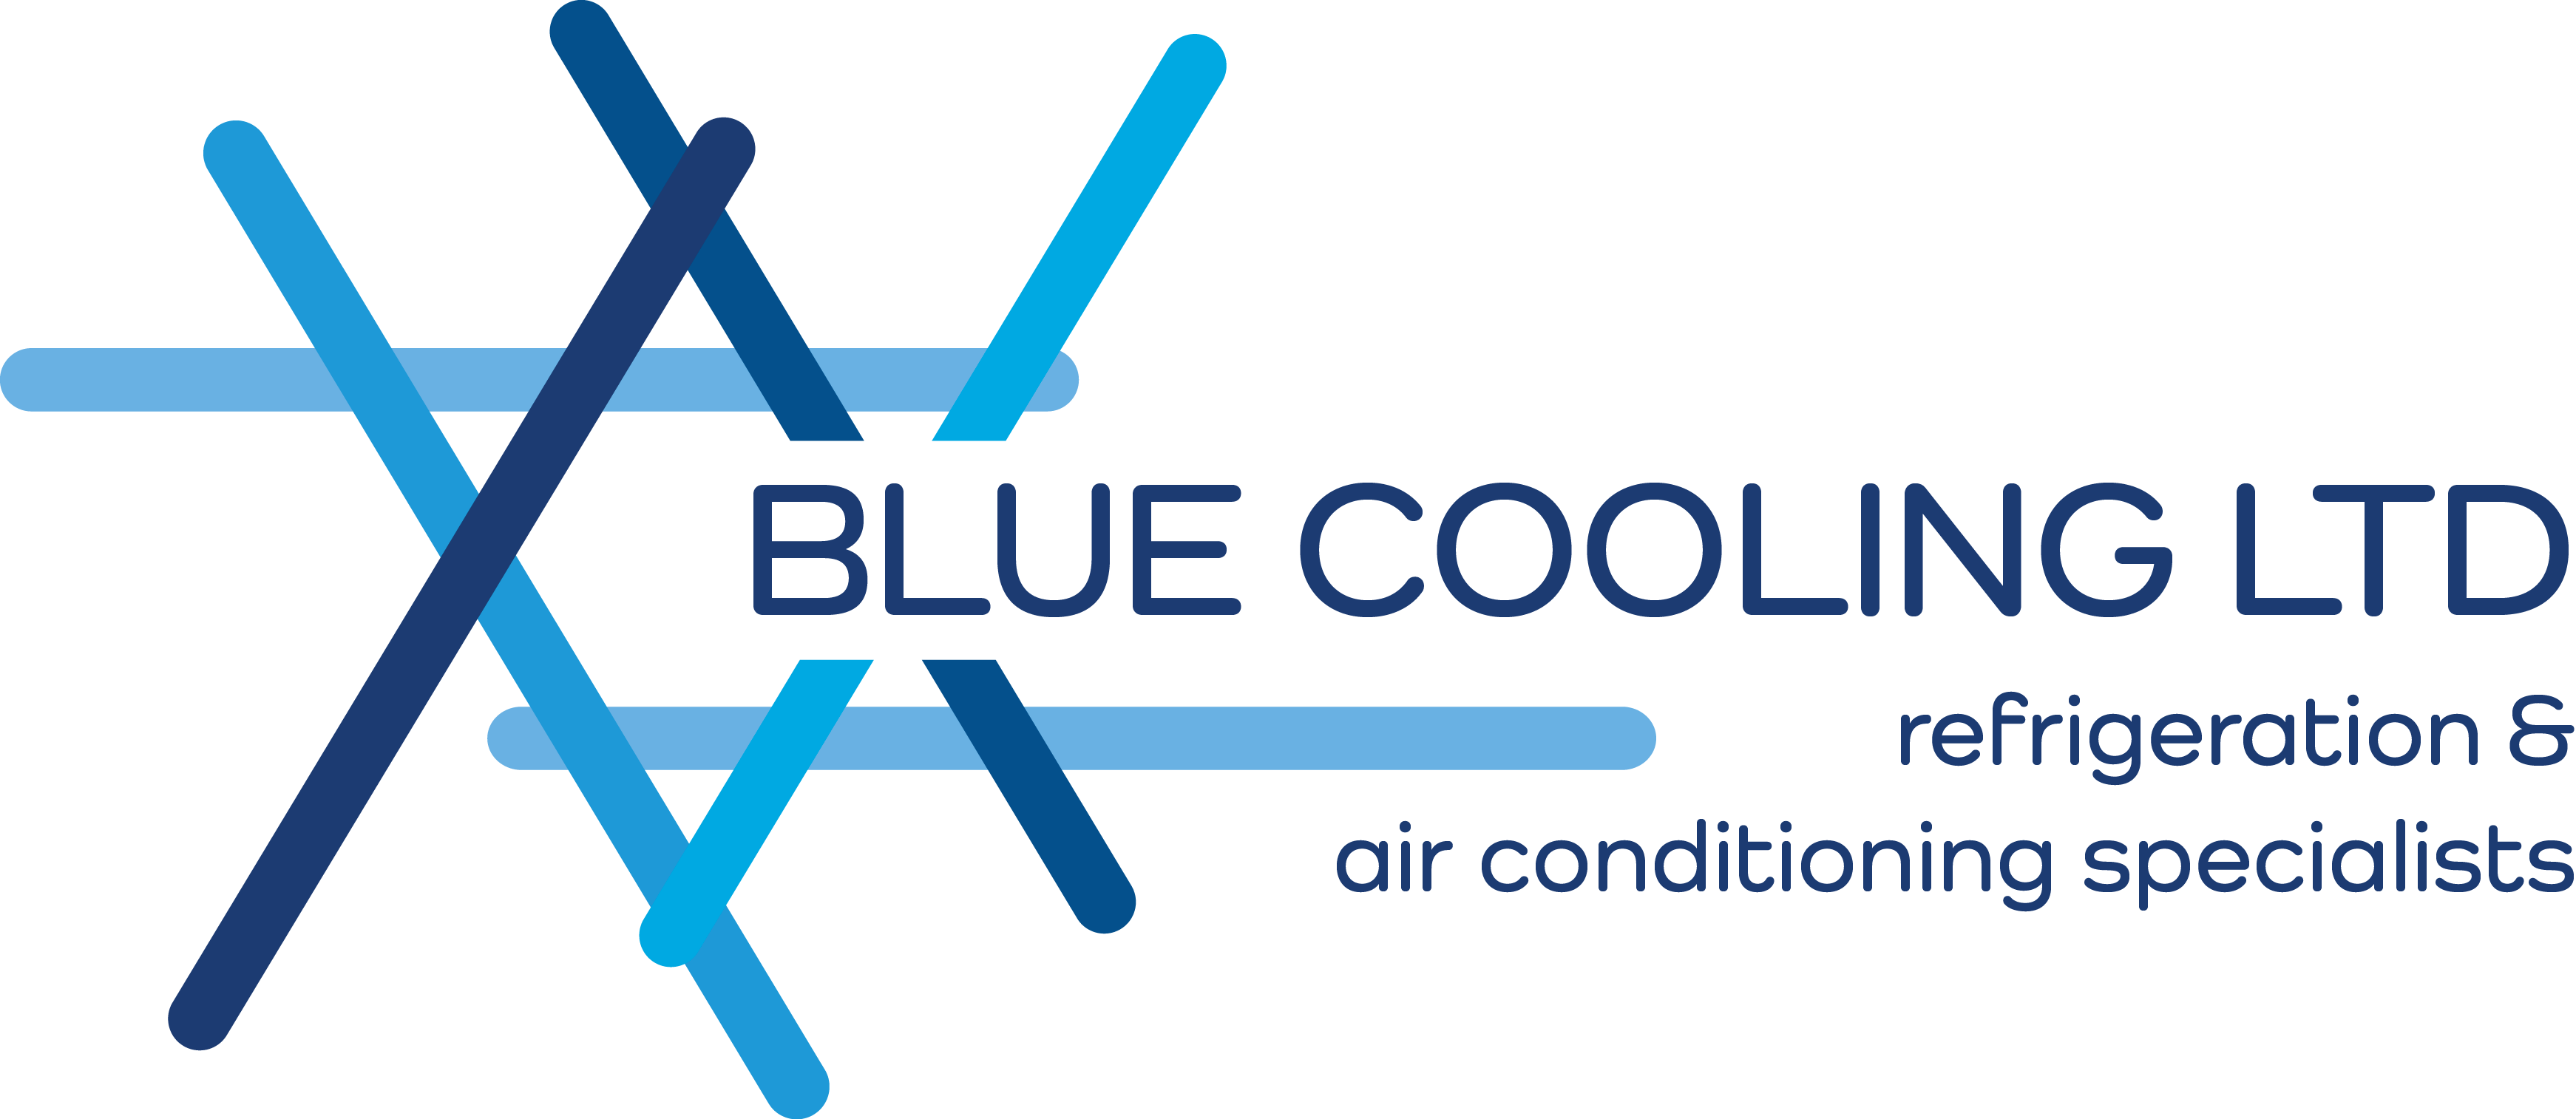 Blue Cooling Ltd